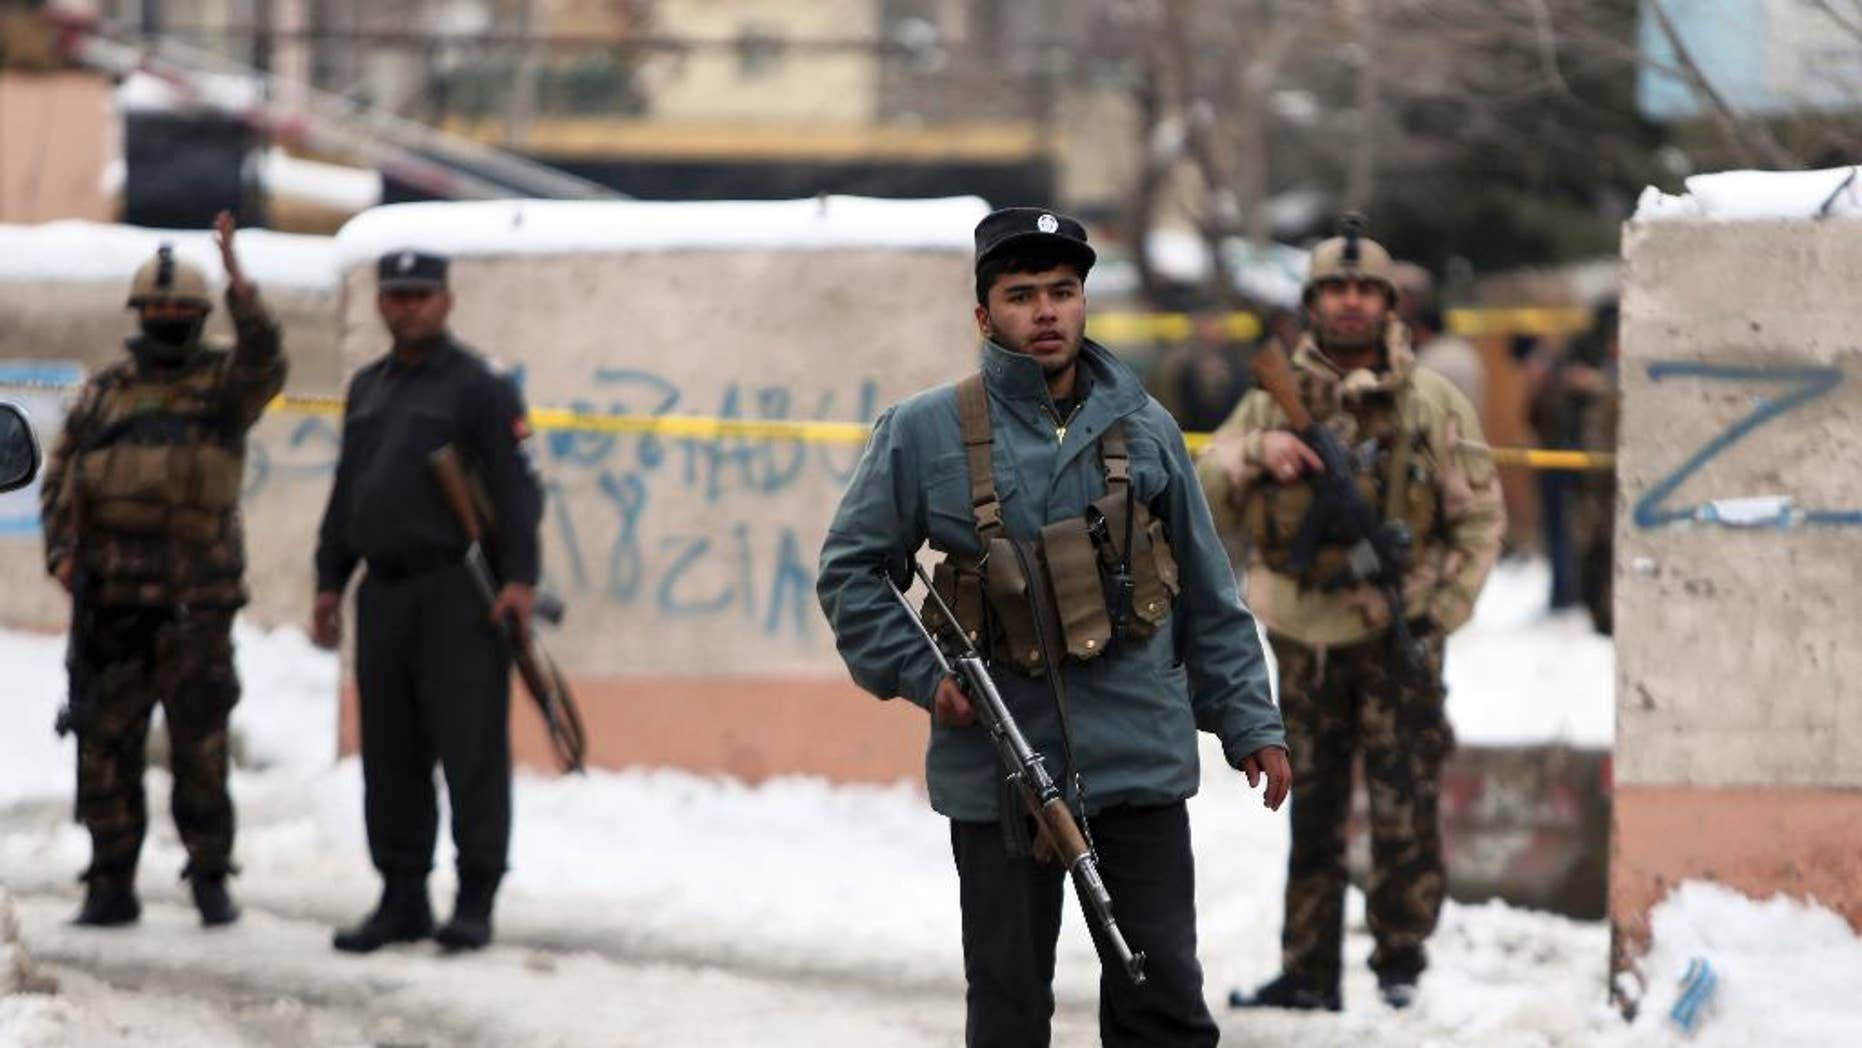 Security personnel stand guard at the site of a suicide attack on the Supreme Court in Kabul, Afghanistan, Tuesday, Feb. 7, 2017. A suicide bomber on Tuesday targeted the Supreme Court building in the Afghan capital, Kabul, killing over a dozen people, officials said. (AP Photo/Rahmat Gul)